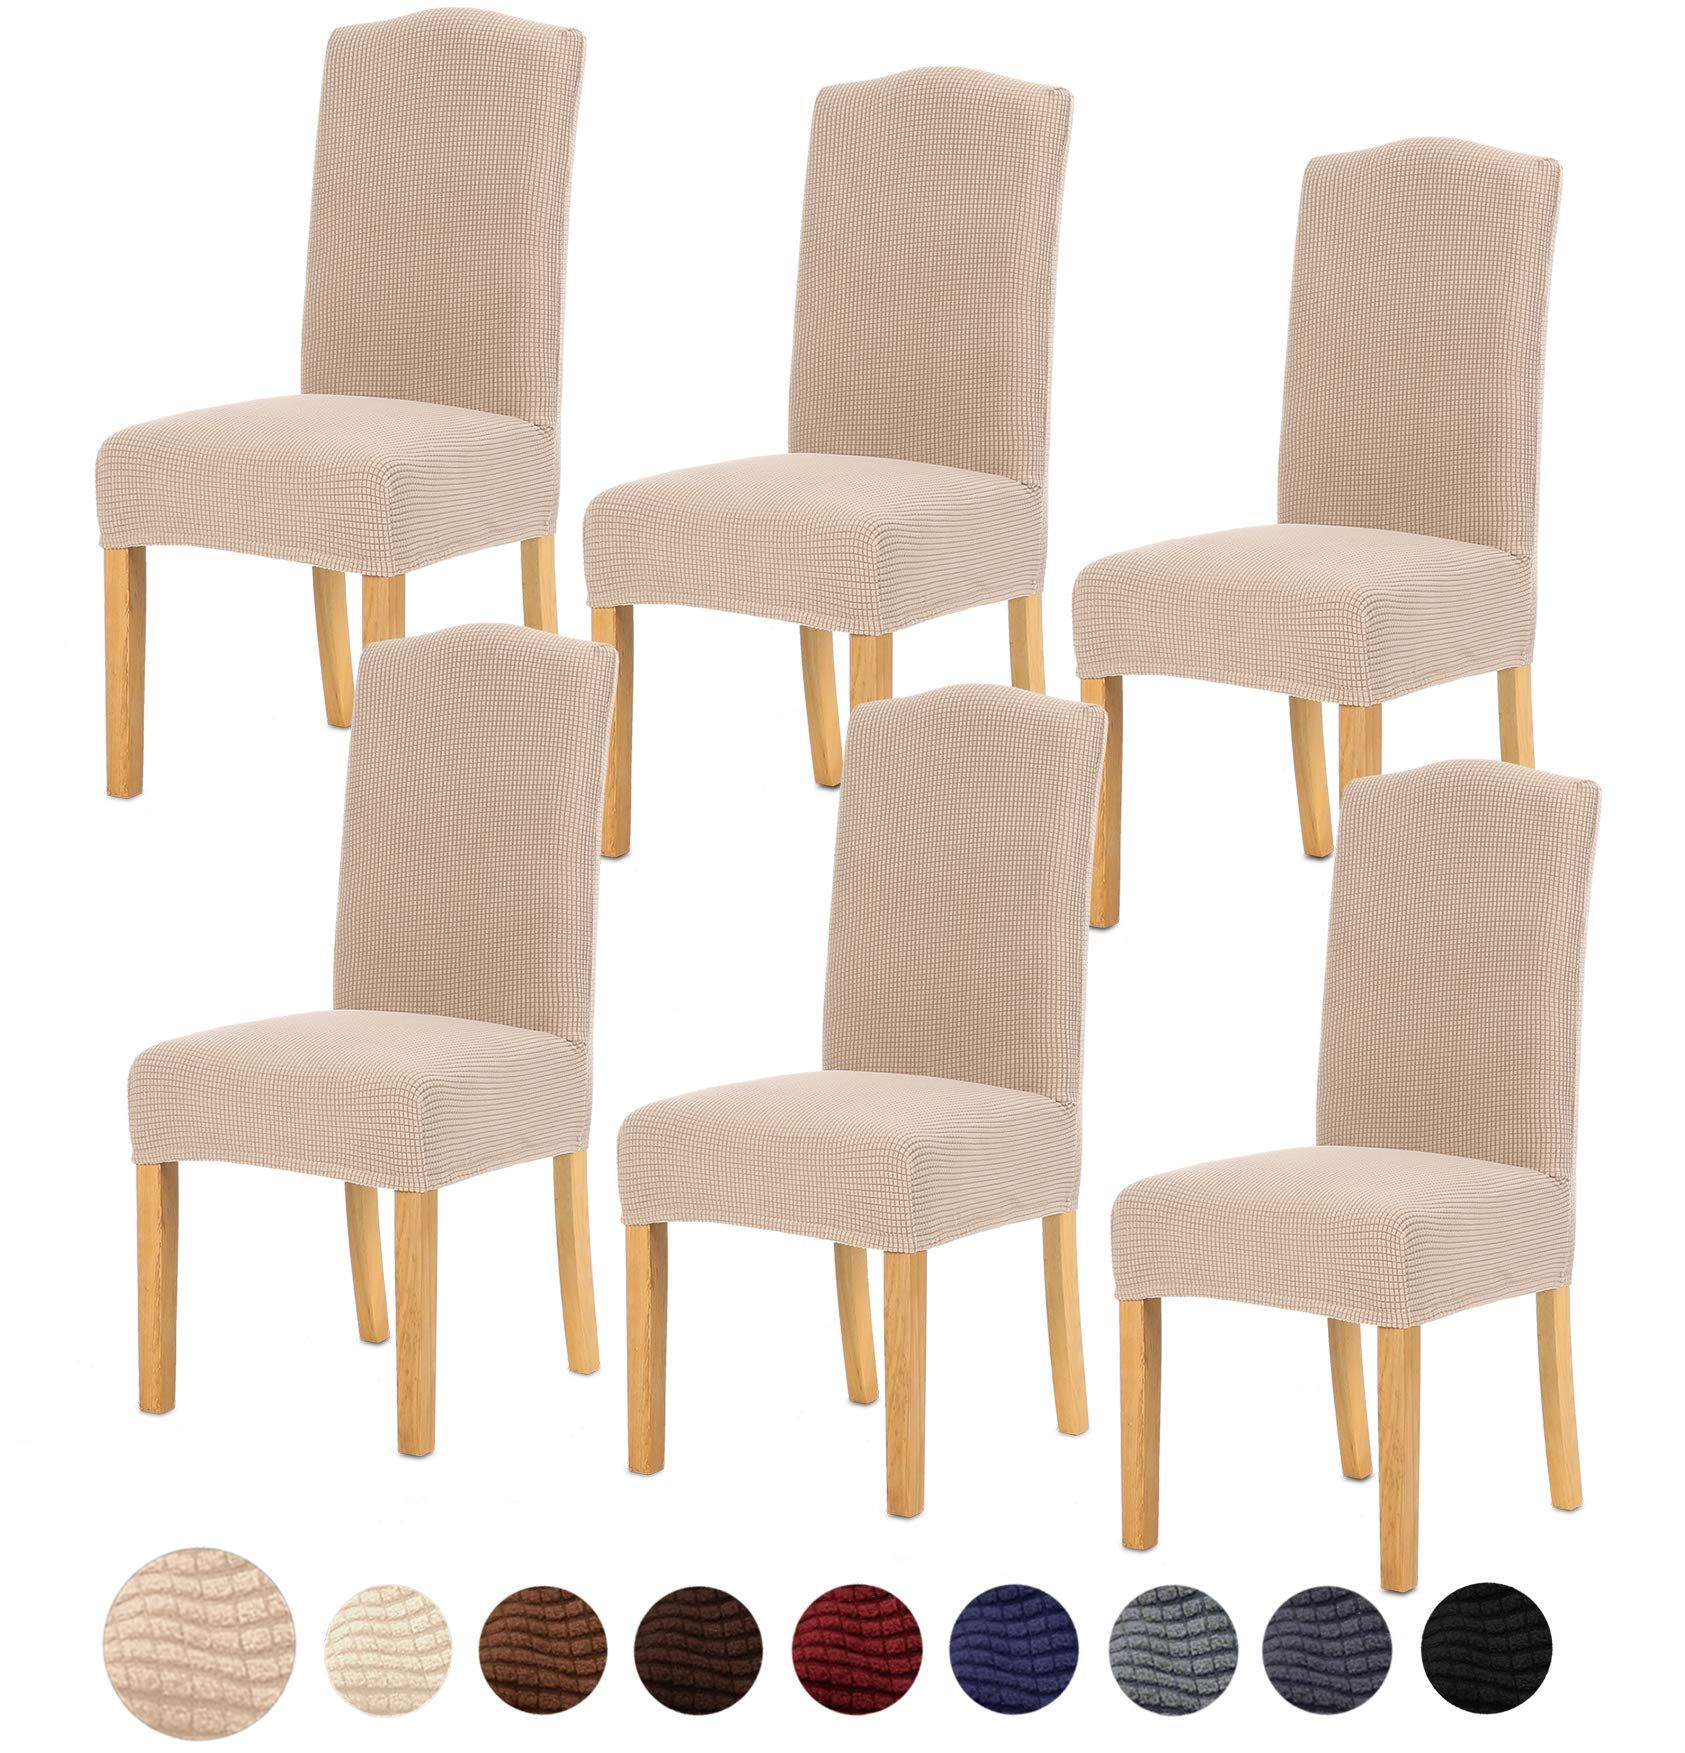 Tianshu Stretch Chair Cover For Home Decor Dining Chair Slipcover 6 Pack Dining Room Chair Covers Dining Room Chair Slipcovers Dining Room Chairs Upholstered